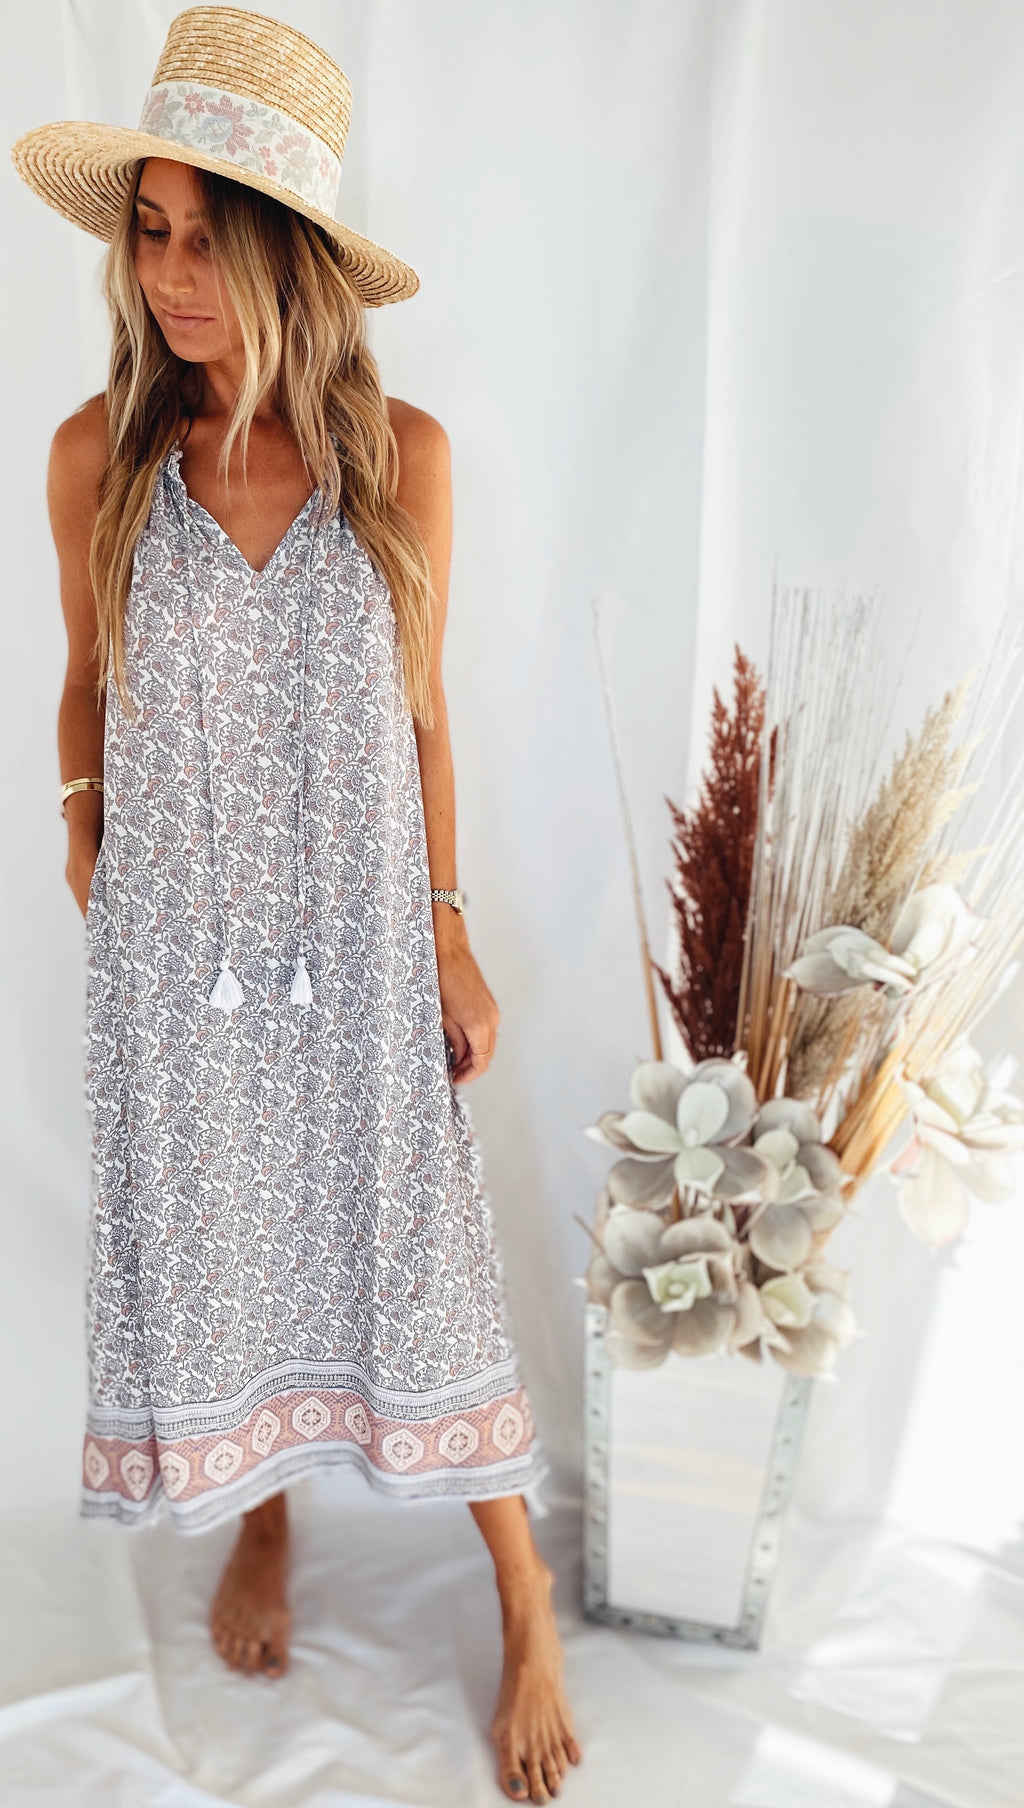 The Lavender Fields Dress